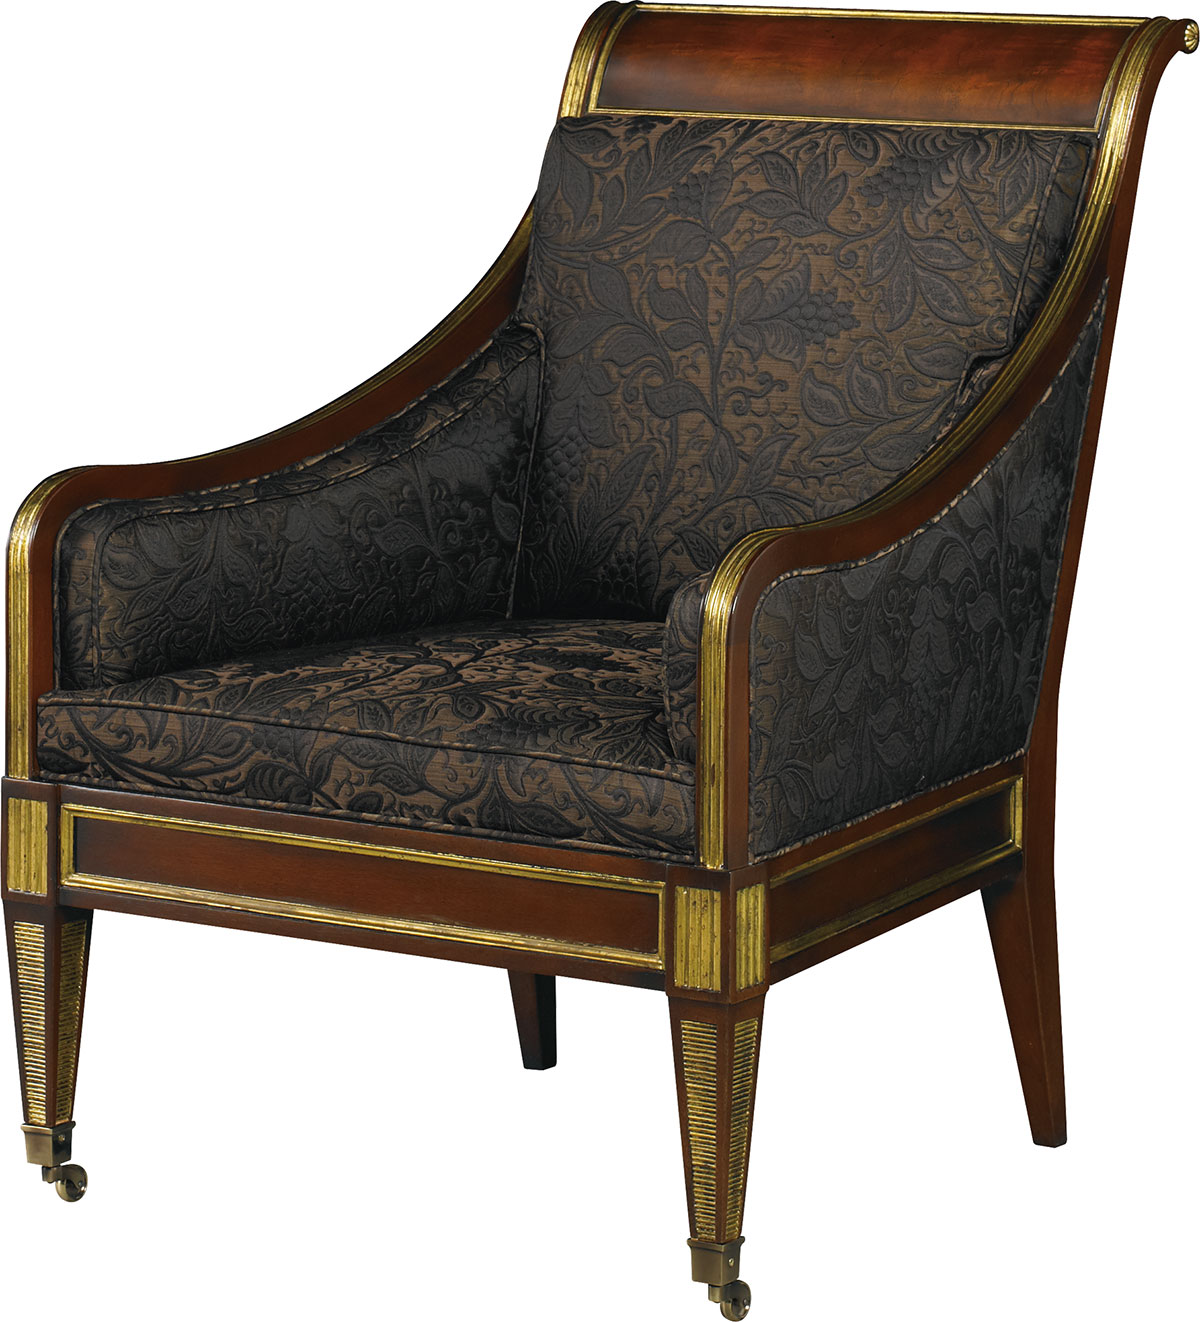 RUSSIAN REGENCY OCCASIONAL CHAIR